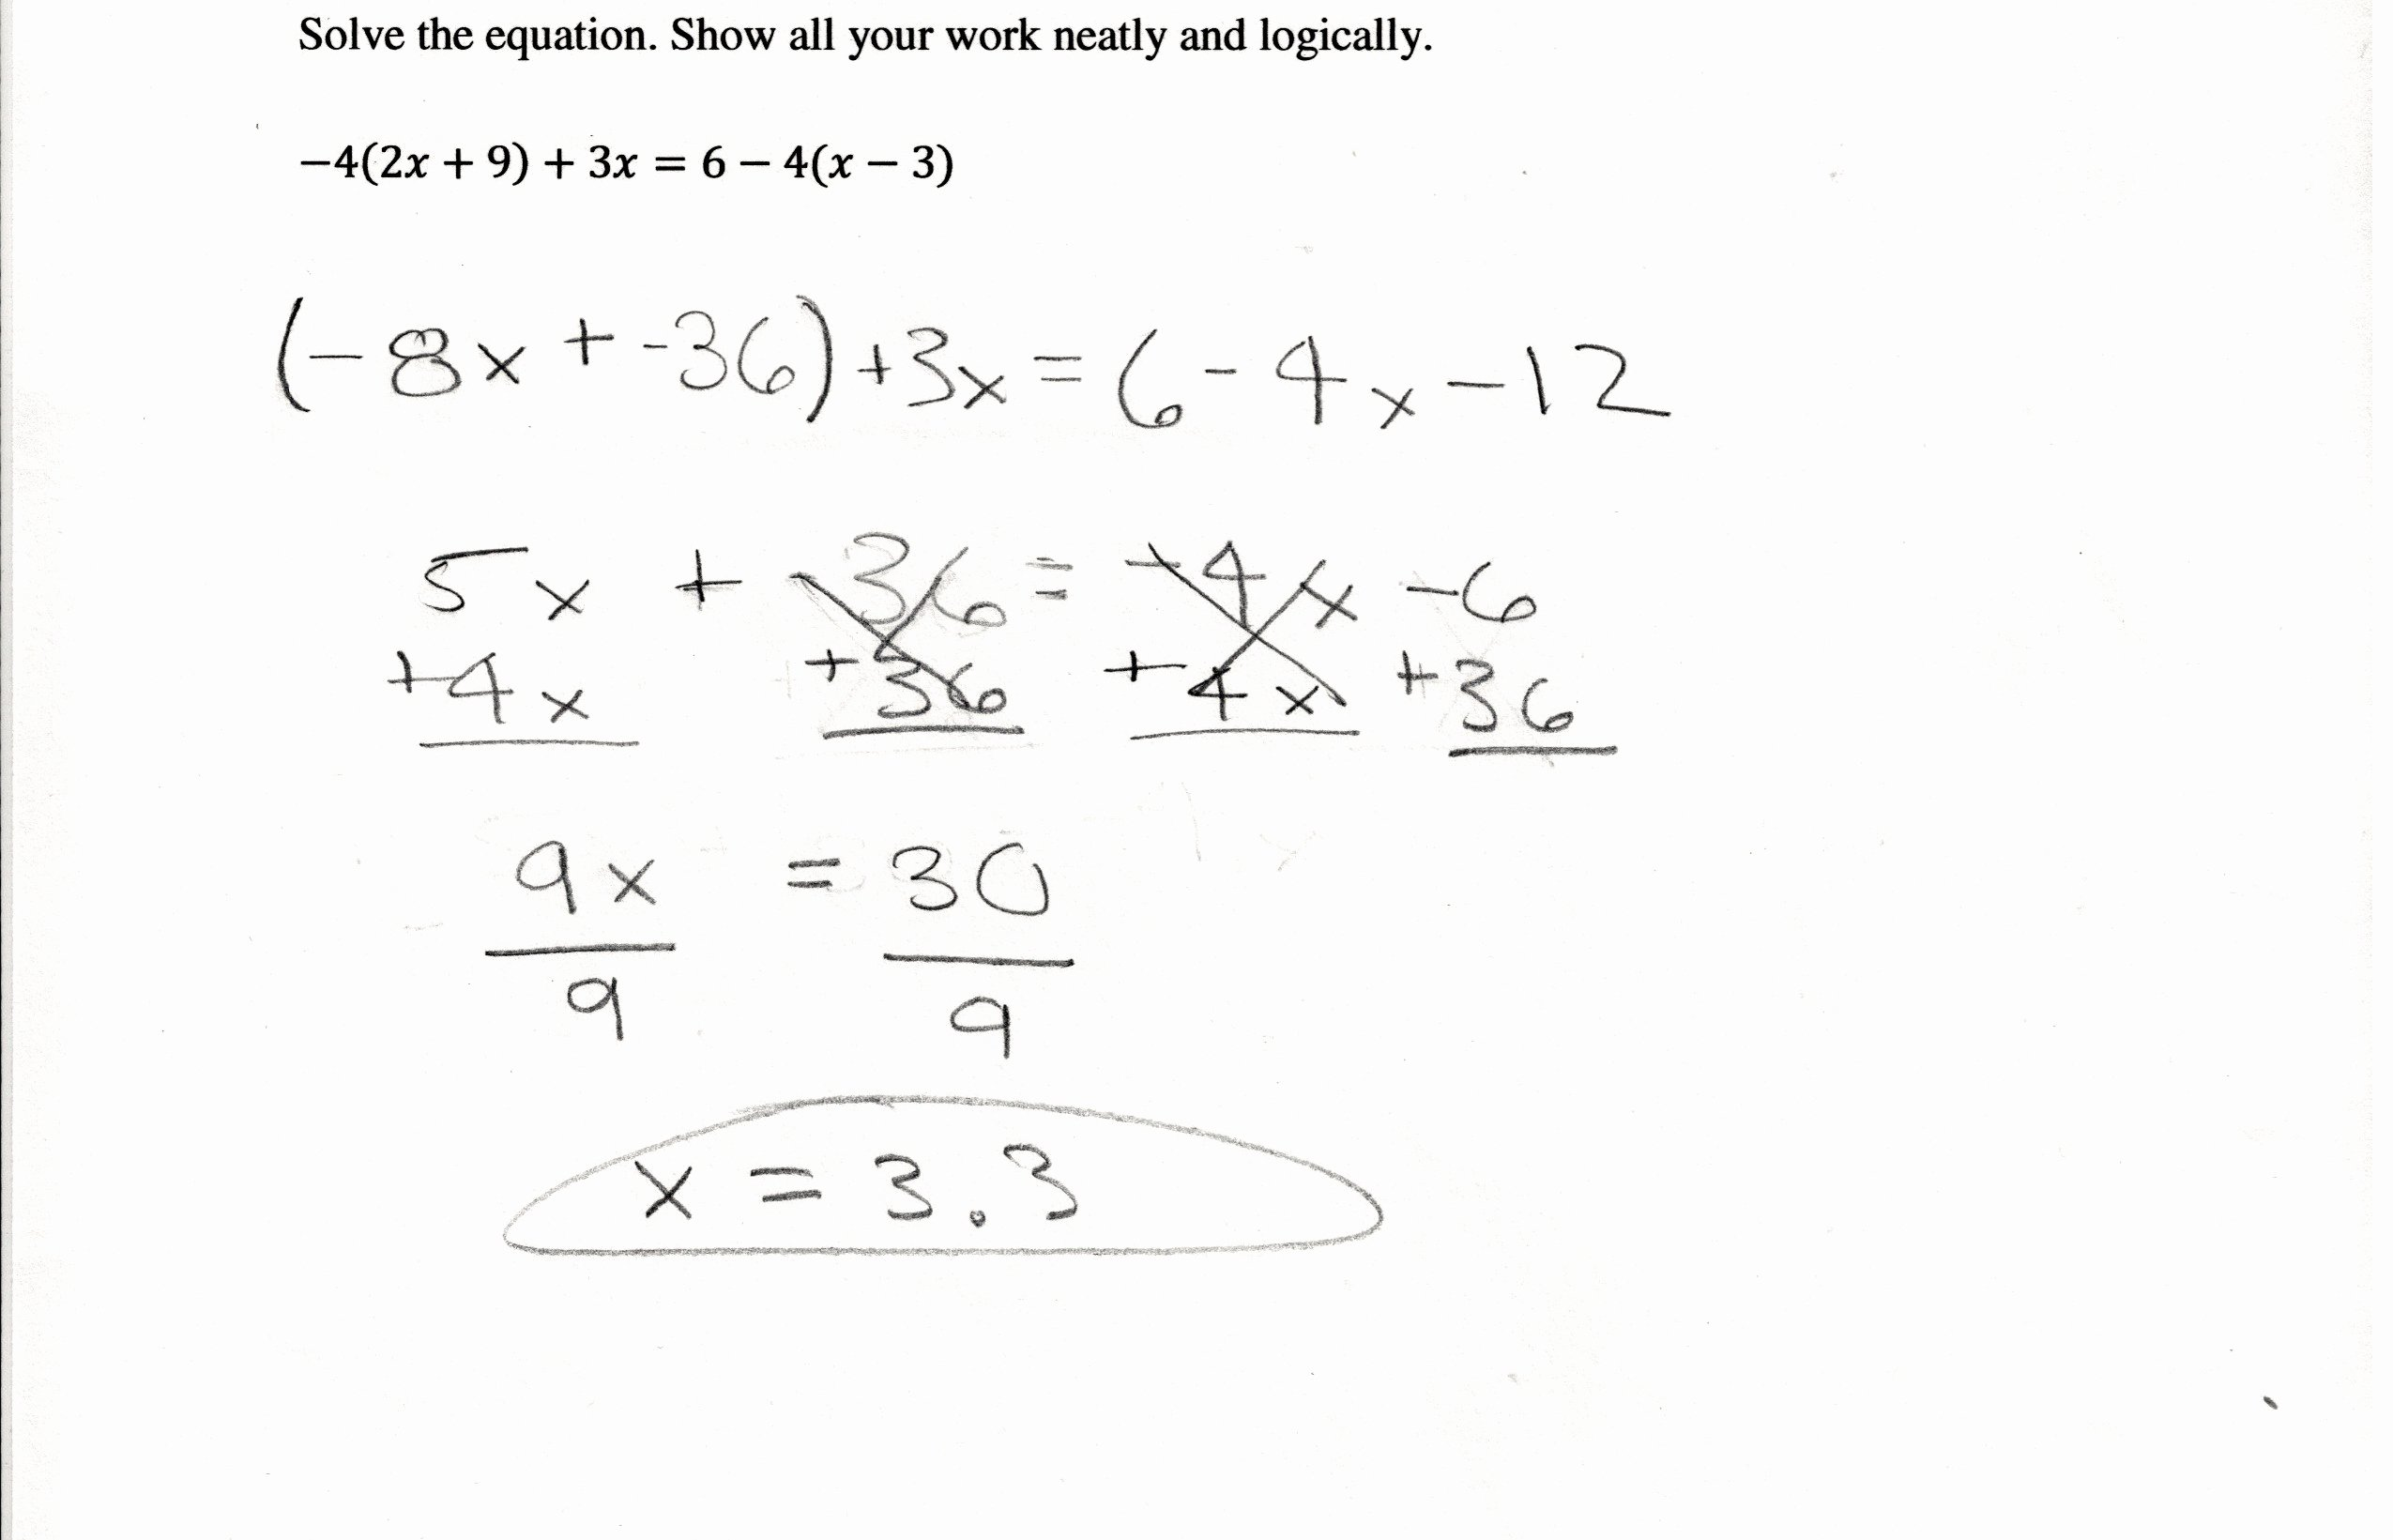 Combining Like Terms Equations Worksheet Luxury Bining Like Terms and Distributive Property Equations